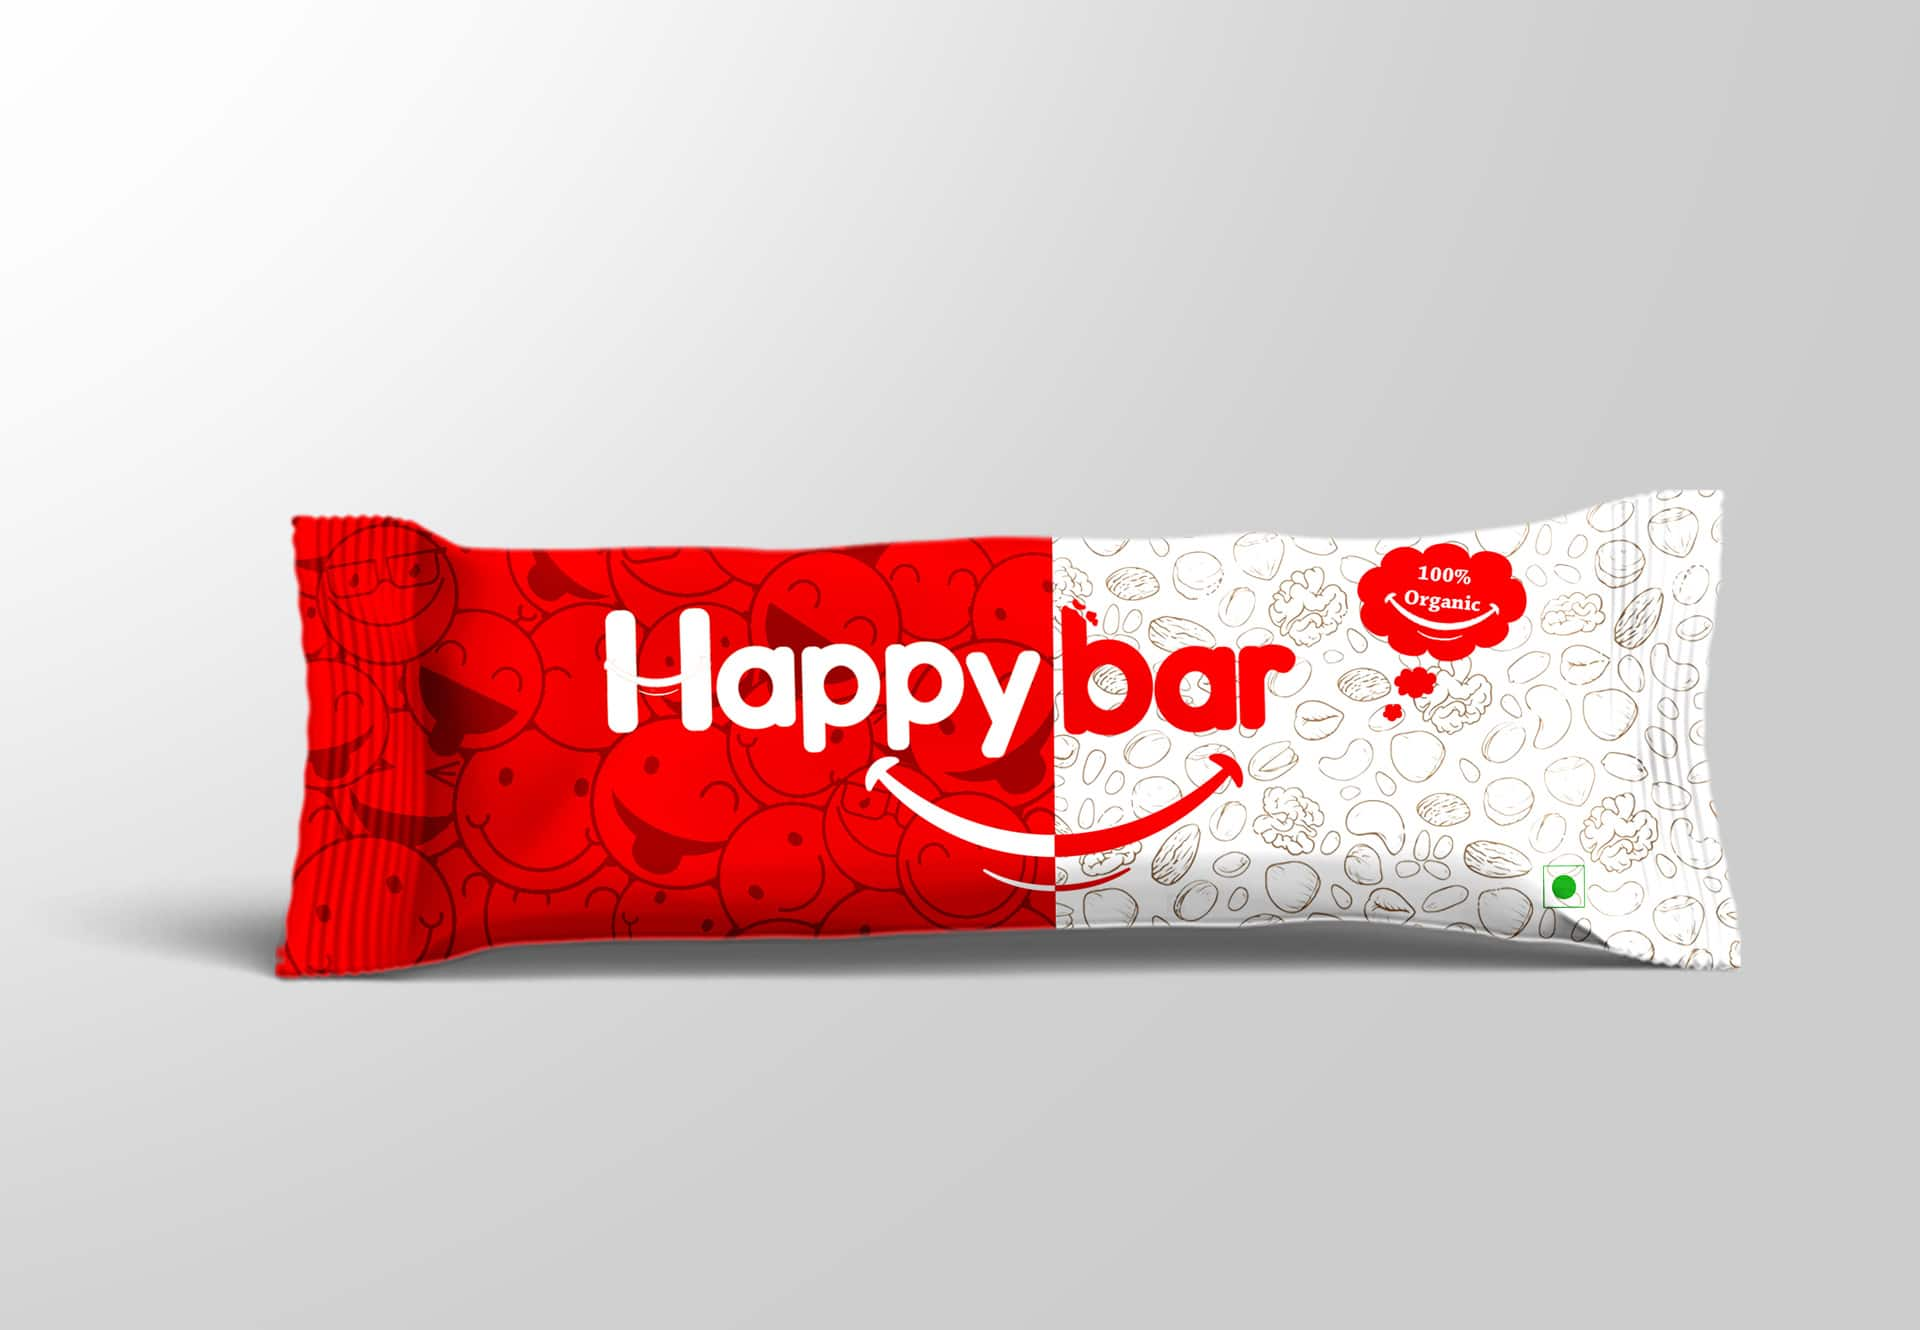 Strawberry-Branding-happy-bar-product-packaging-designing (4)